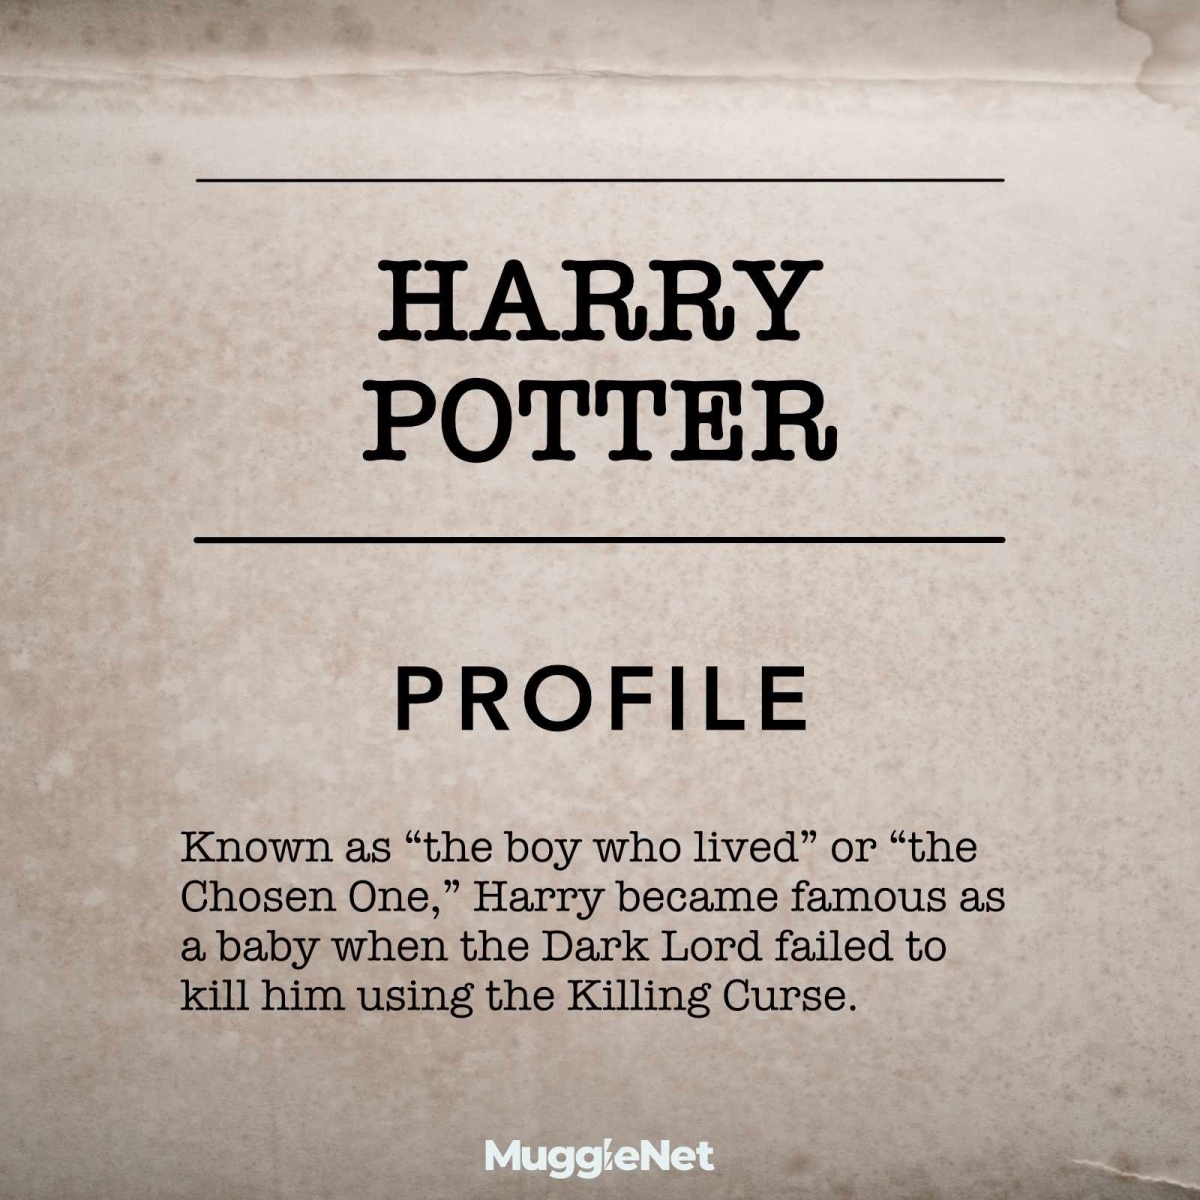 Parchment paper background of Harry Potter resume: Profile